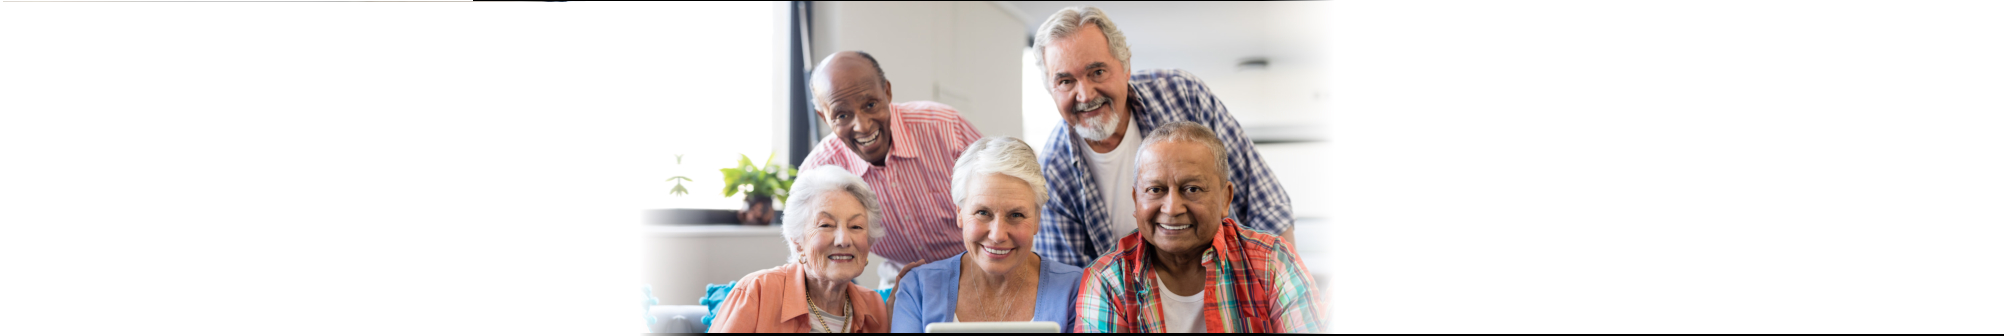 group of elderly couples smiling